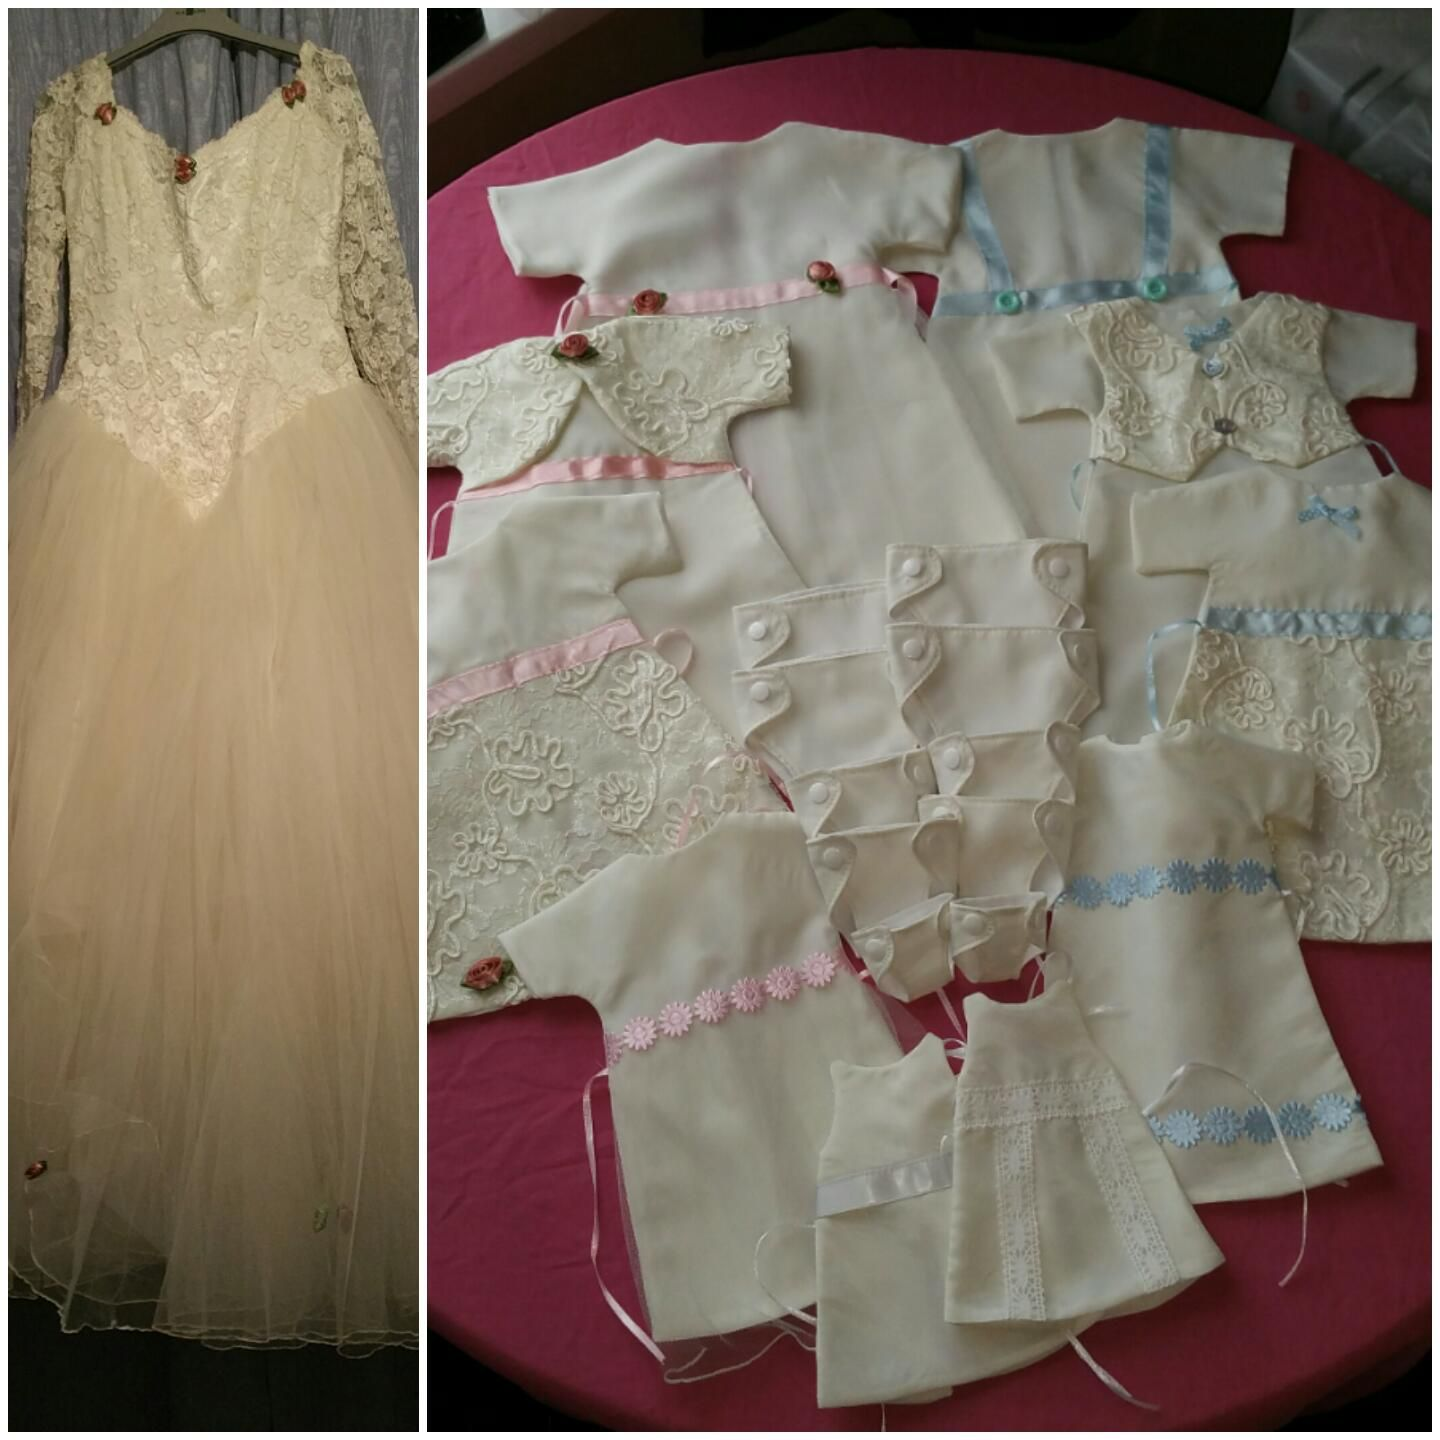 Cherished Gowns UK - Donating a Wedding Dress | Dress to Gown ...